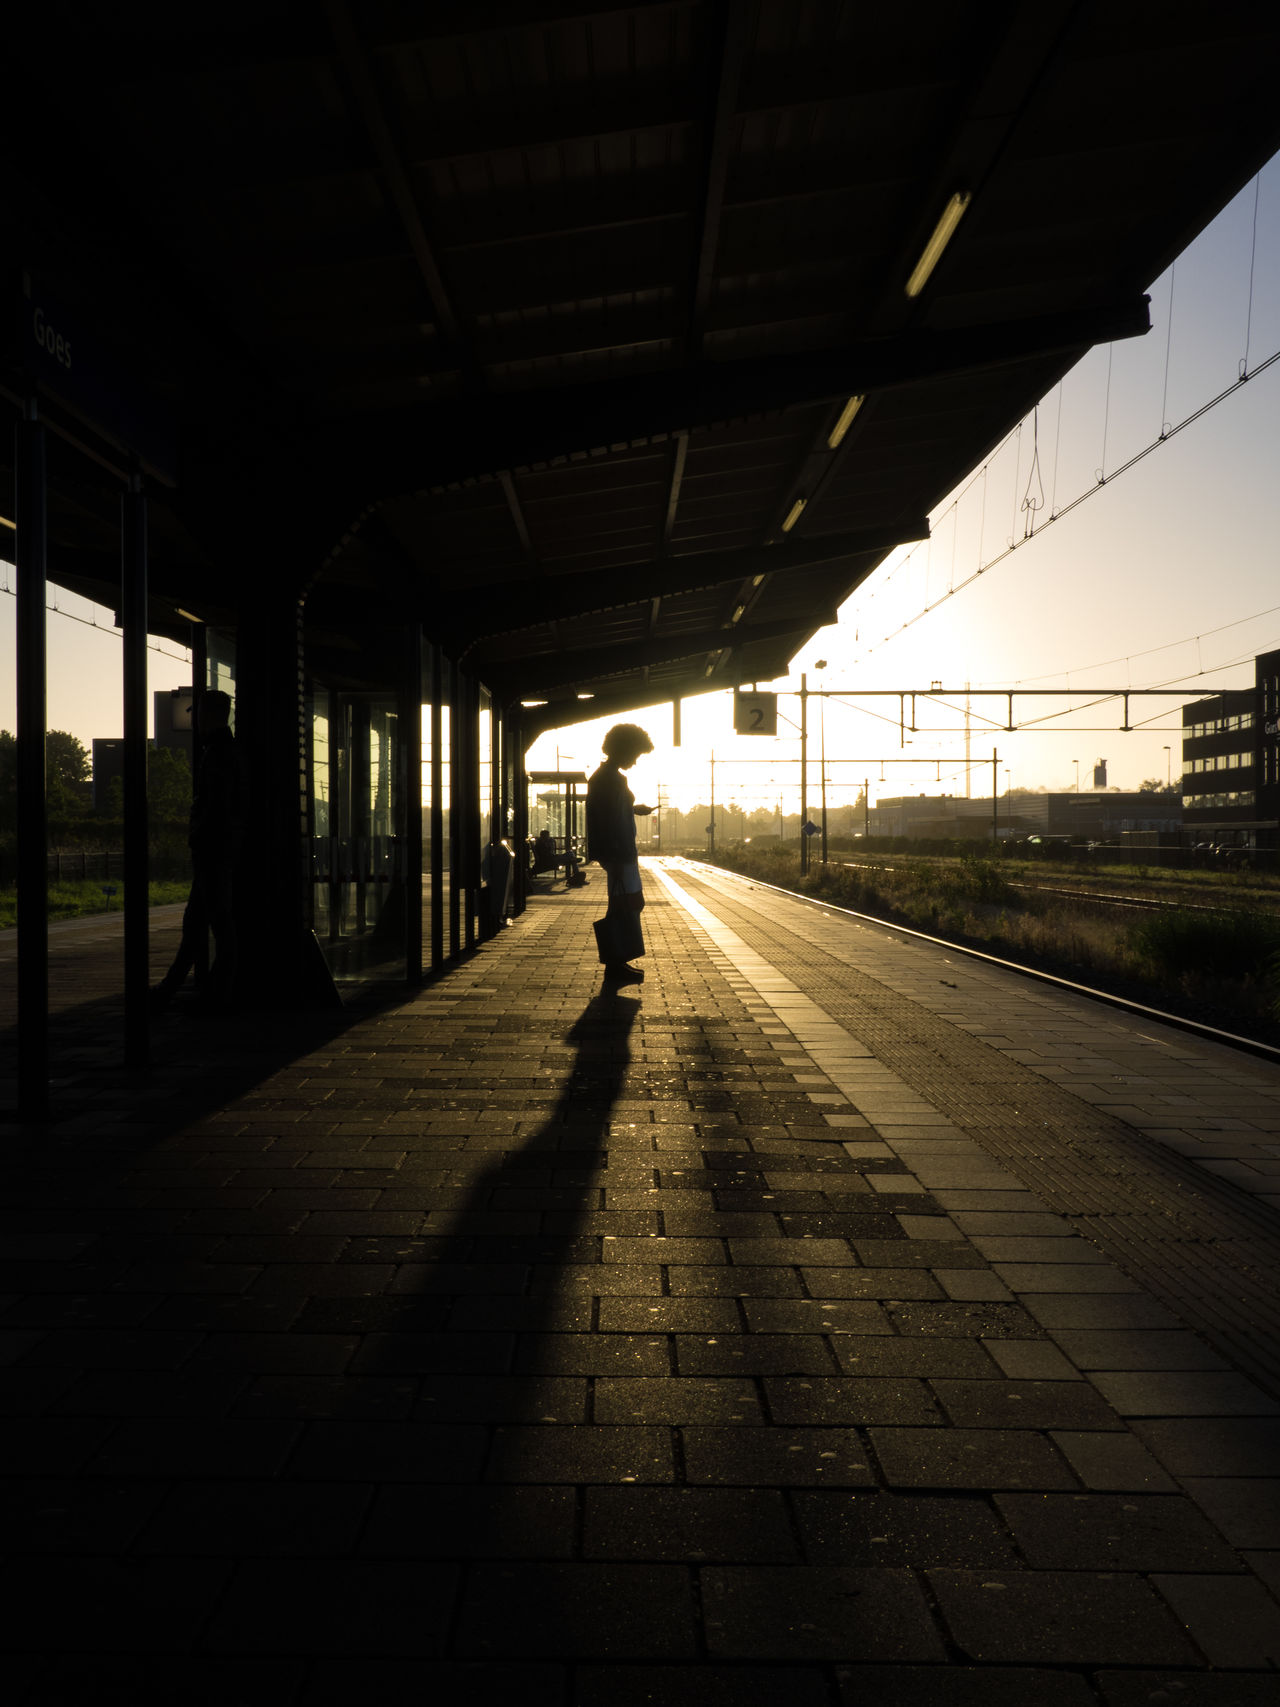 Adult Adults Only Commute Copy Space Day Full Length Morning One Person People Person Perspective Platform Real People Silhouette Station Sunrise The City Light Unrecognizable Person Waiting Woman